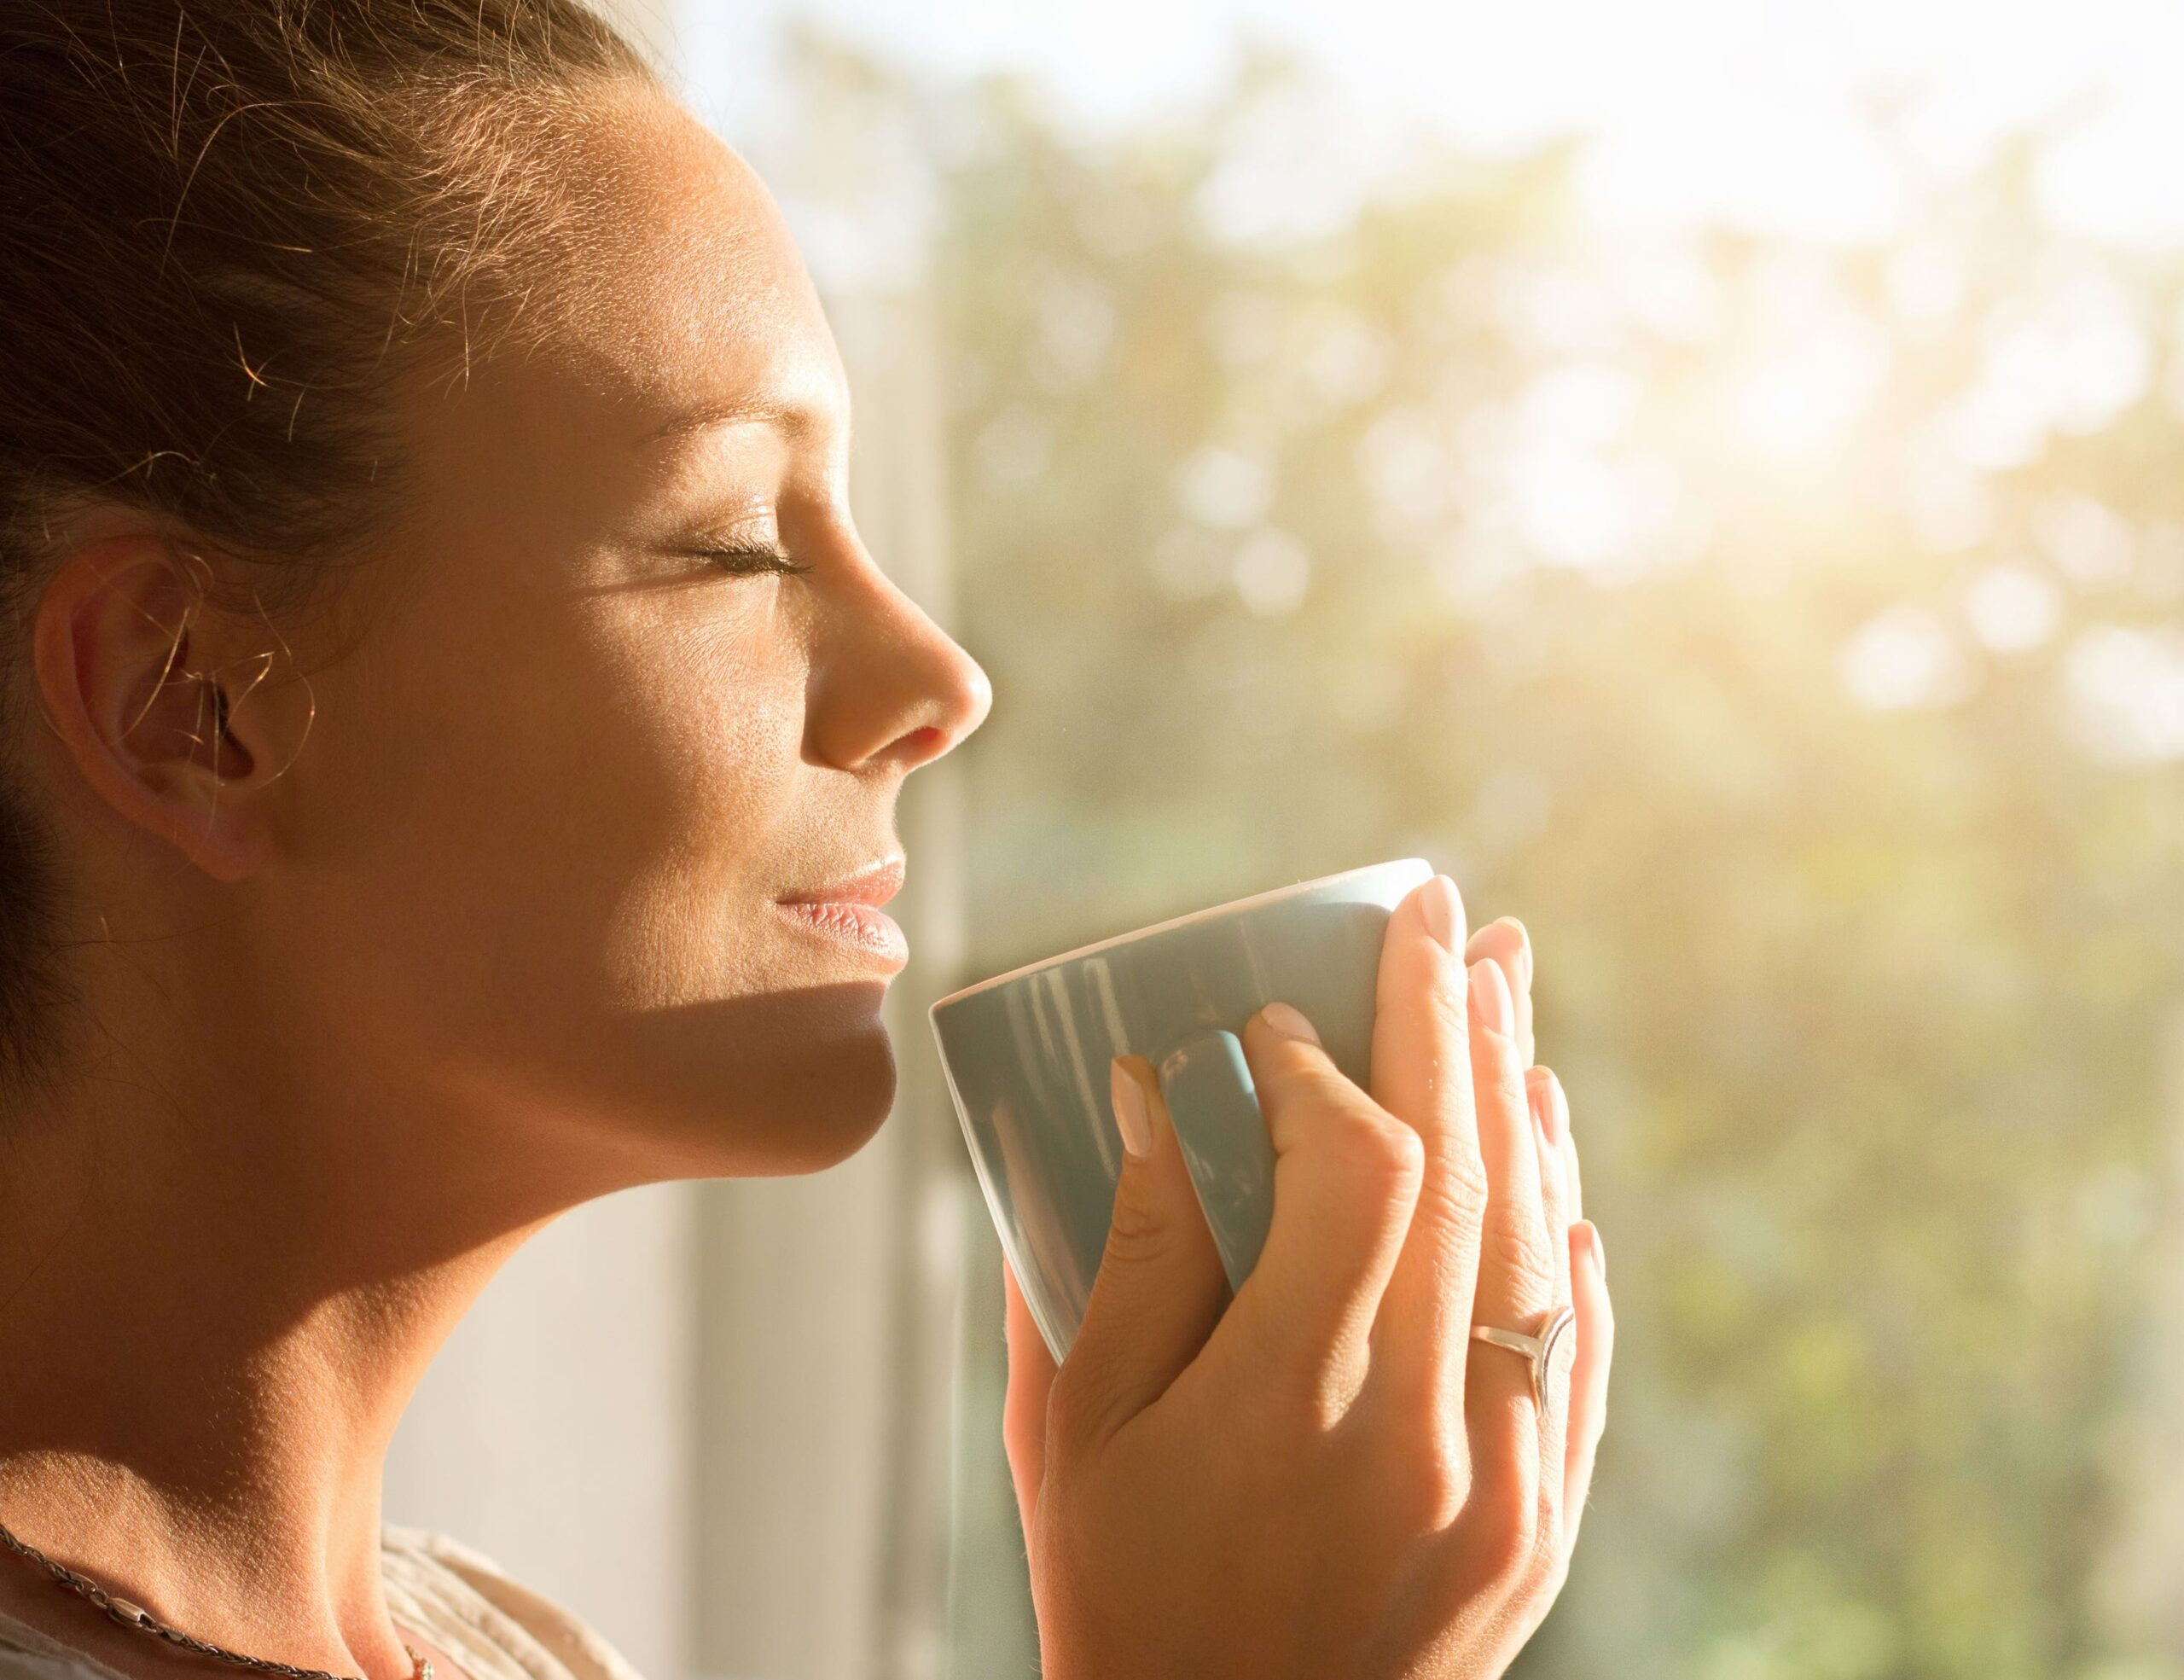 woman holding cup smiles in the sunshine scaled